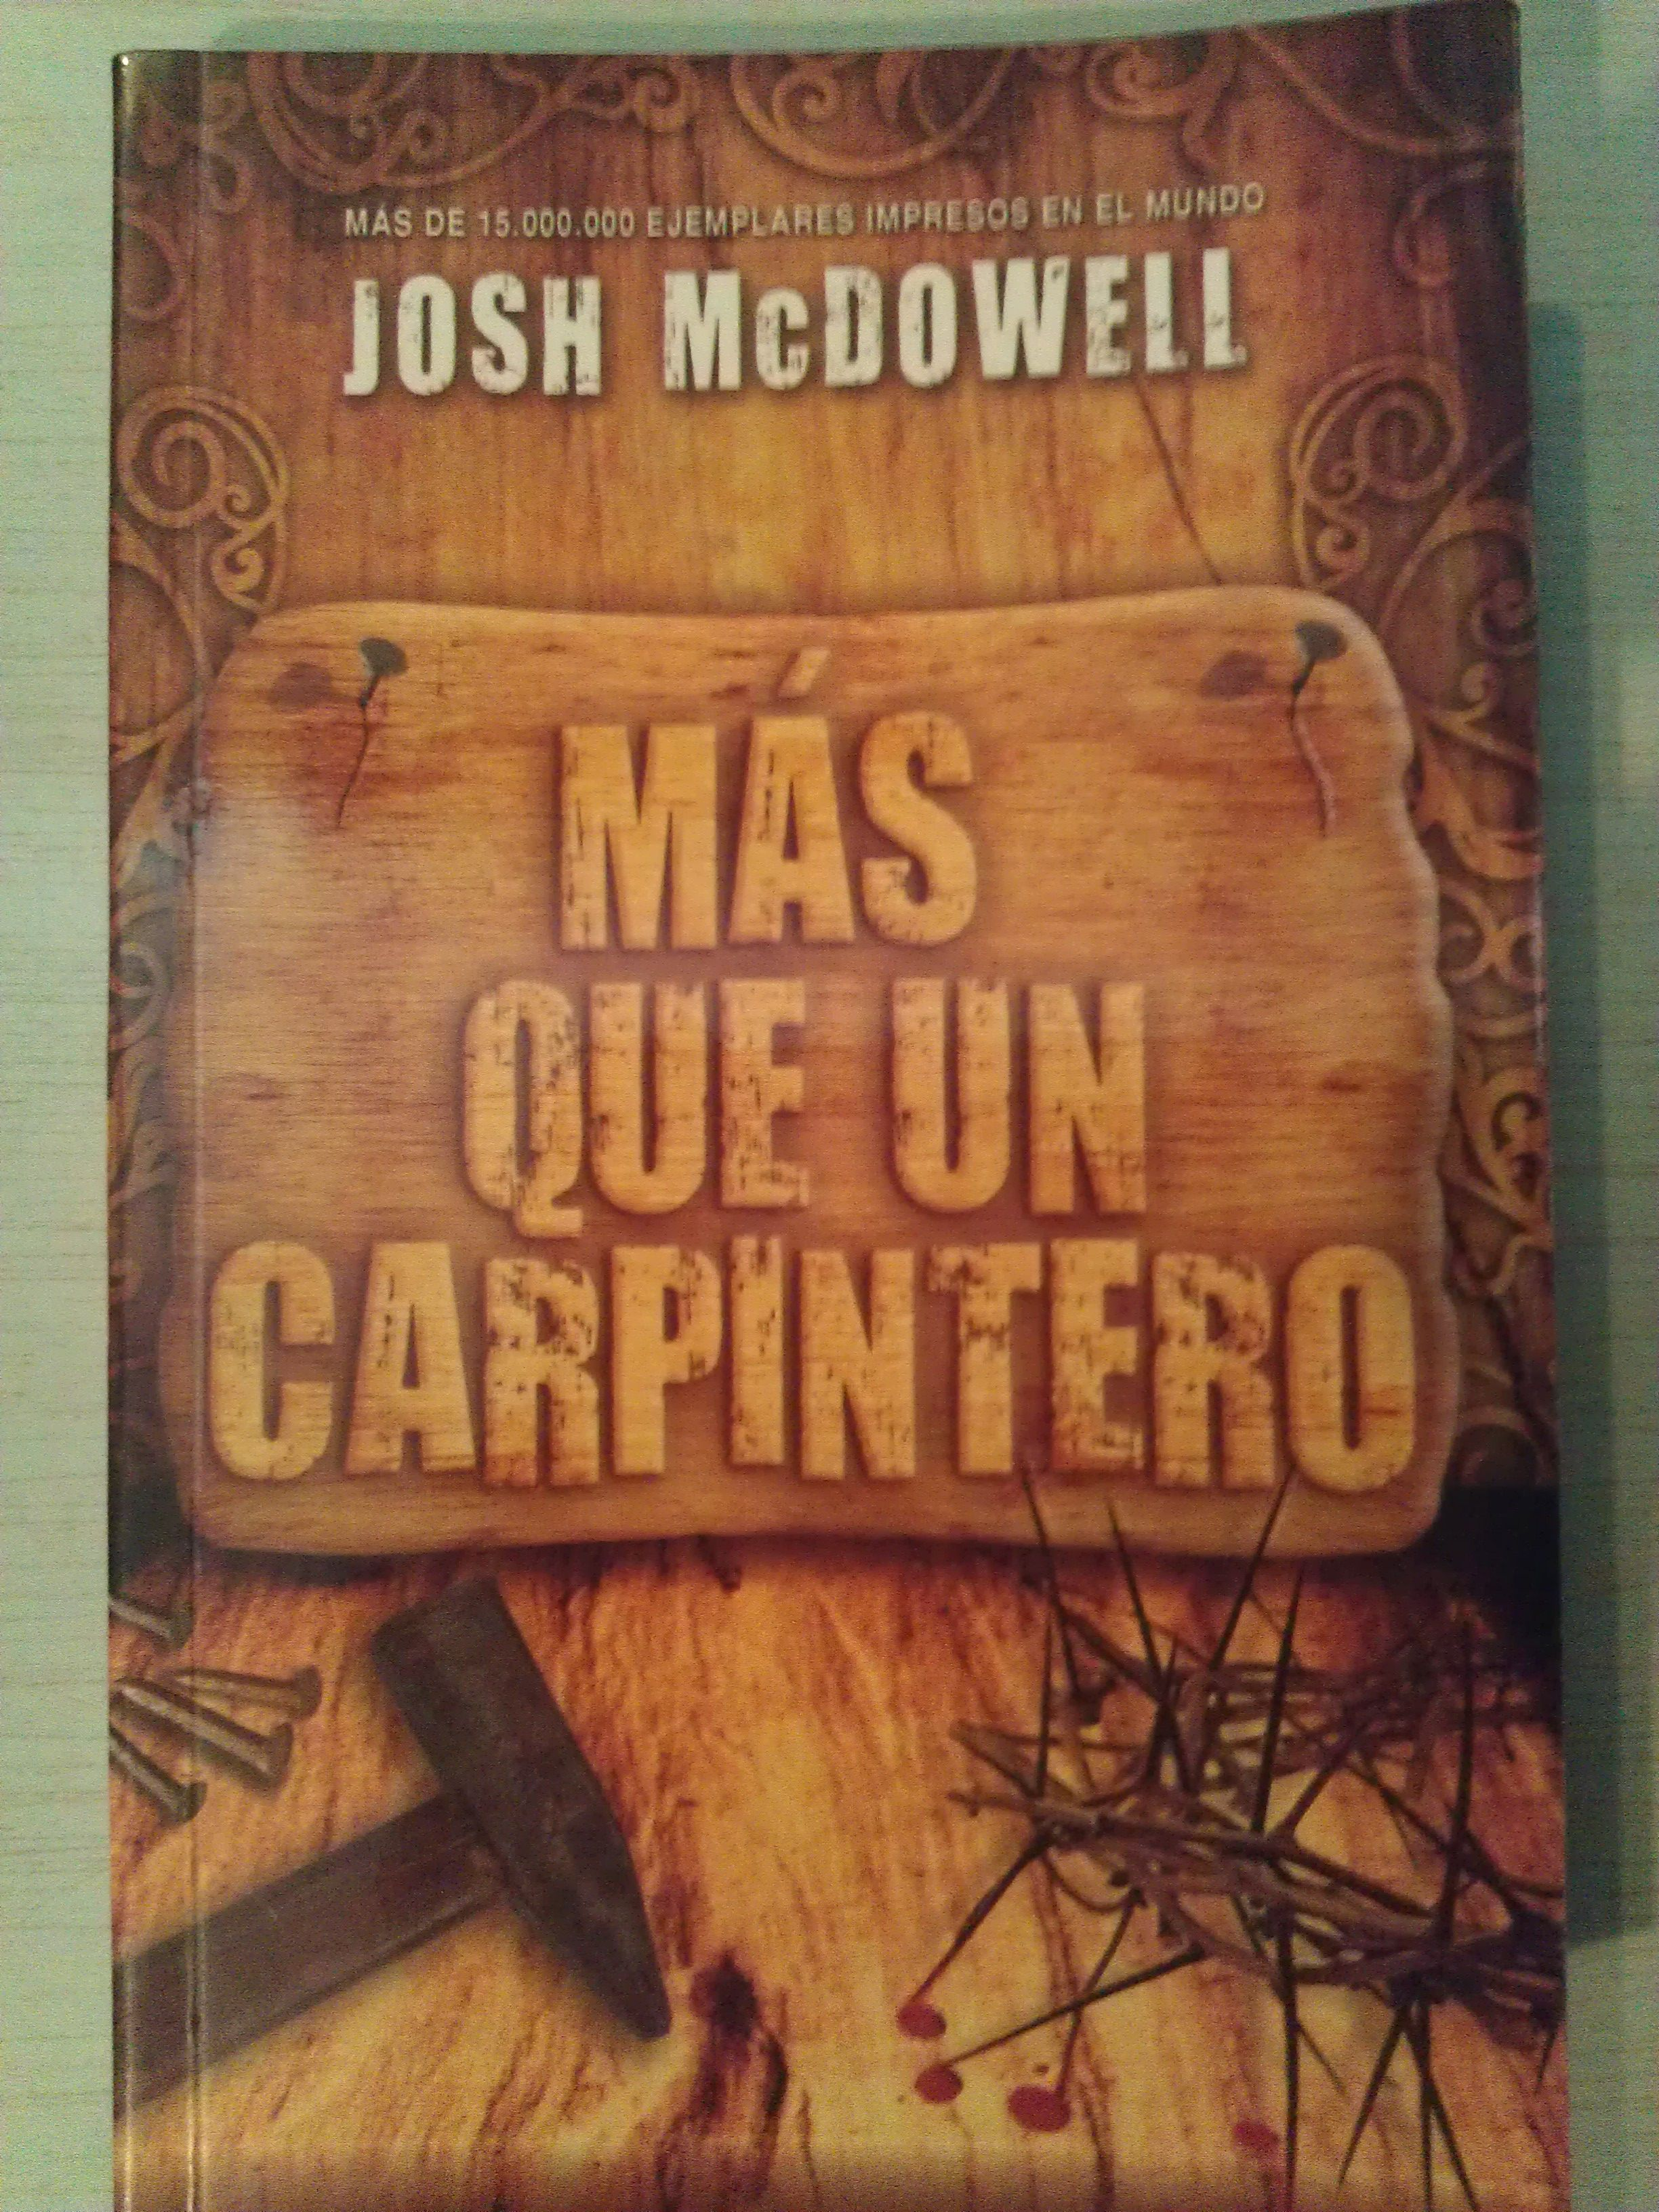 Josh Mcdowell Libros Josh Mcdowell Book Books Worth Reading